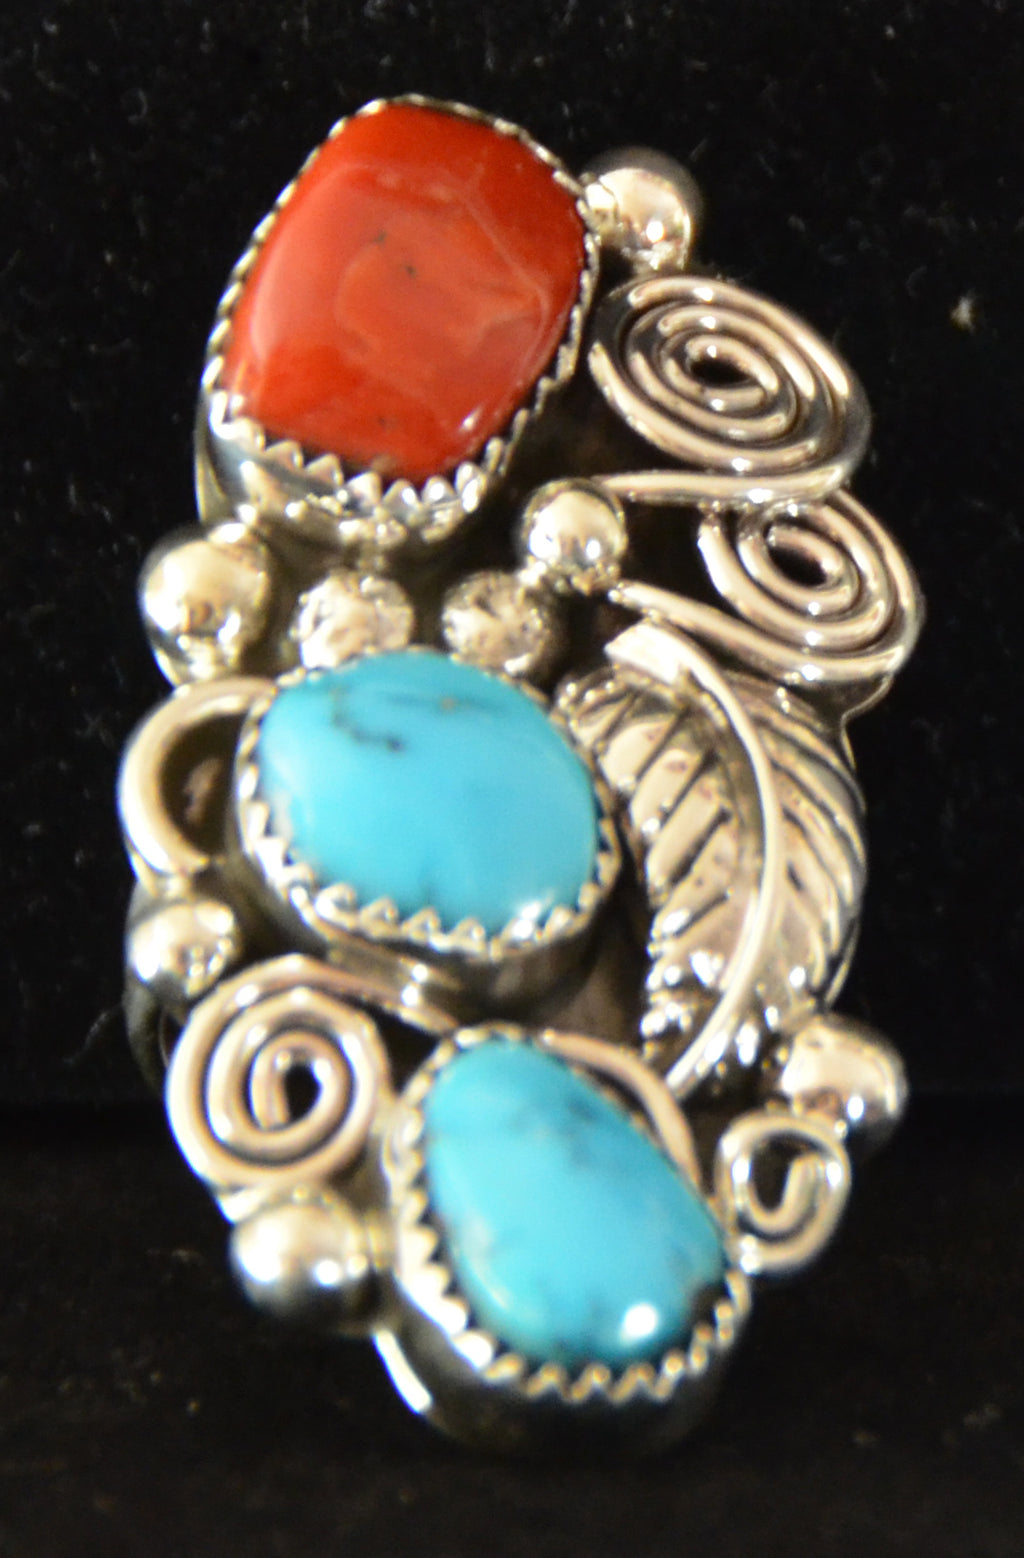 Native American Jewelry : Navajo : Ring : Turquoise : Kenneth Largo : NAJ- 3R - Getzwiller's Nizhoni Ranch Gallery